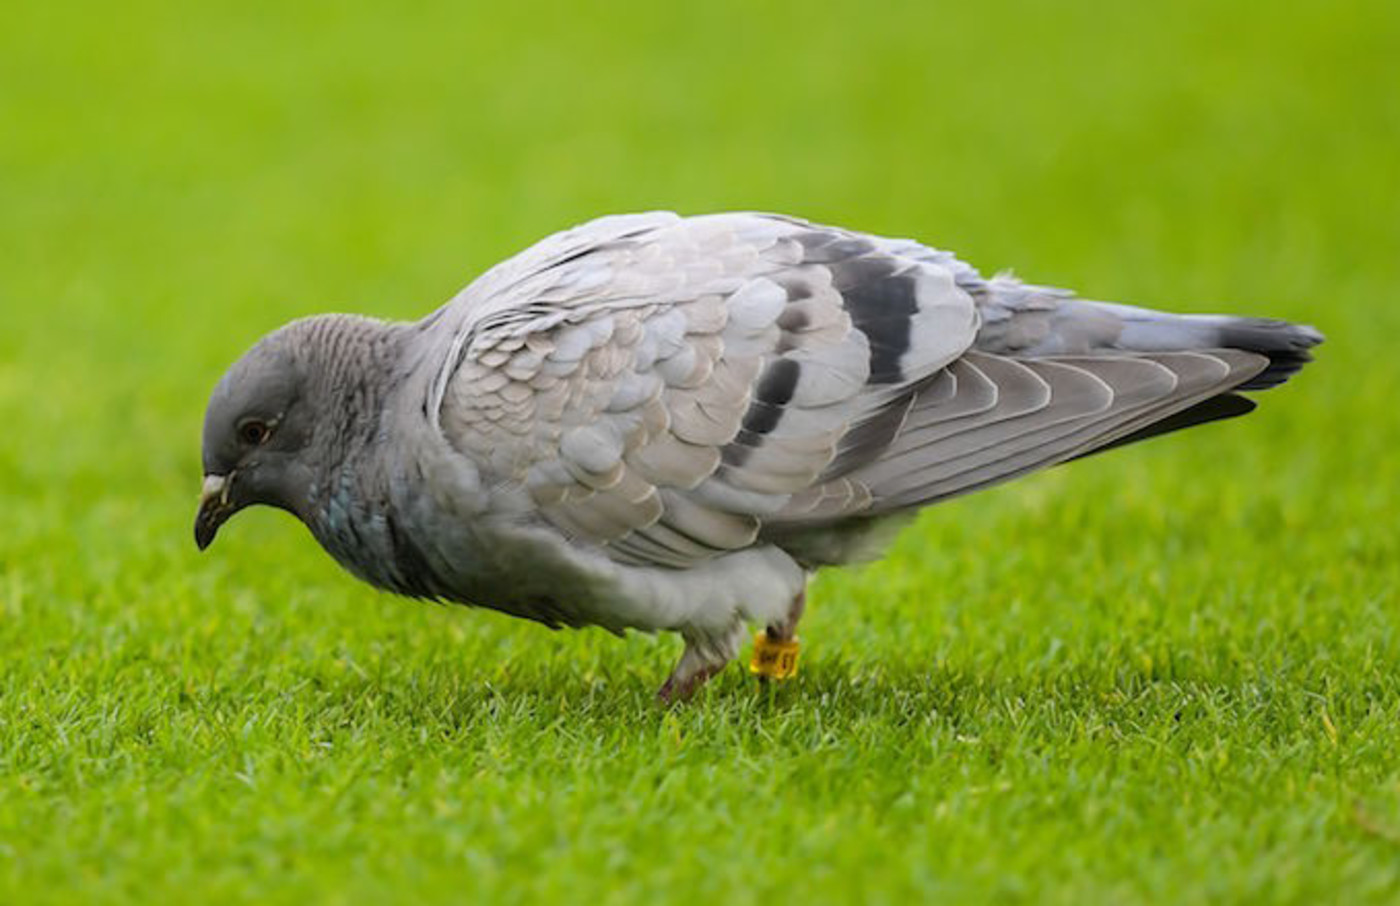 Pigeon spotted at the pitch during the Dutch Eredivisie match.